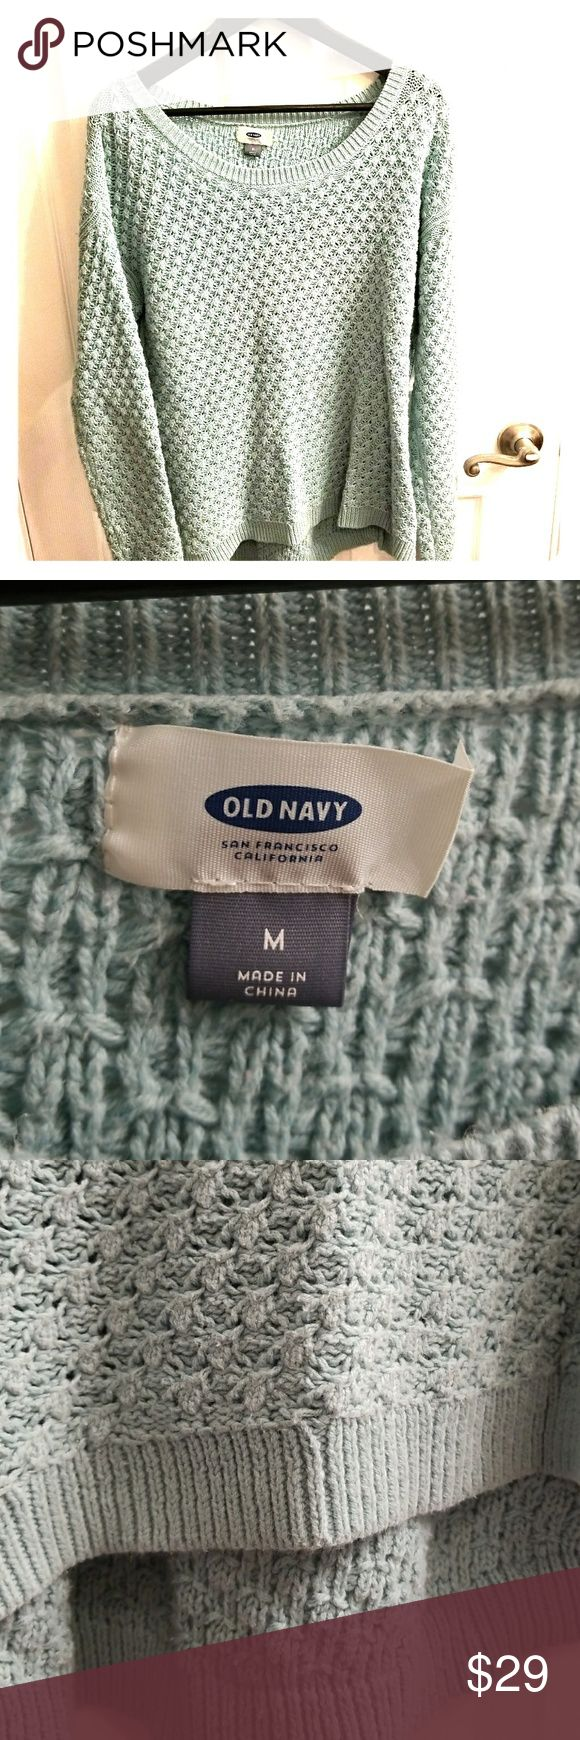 Adorable Knit Sweater Accepting Offers. Muted teal or mint knitted sweater size M. Longer in the back, great with leggings. No loose threads. Very mild pilling in armpits, see photos. Honestly could gently pluck them off. I would rate the sweater in very good condition. Old Navy Sweaters